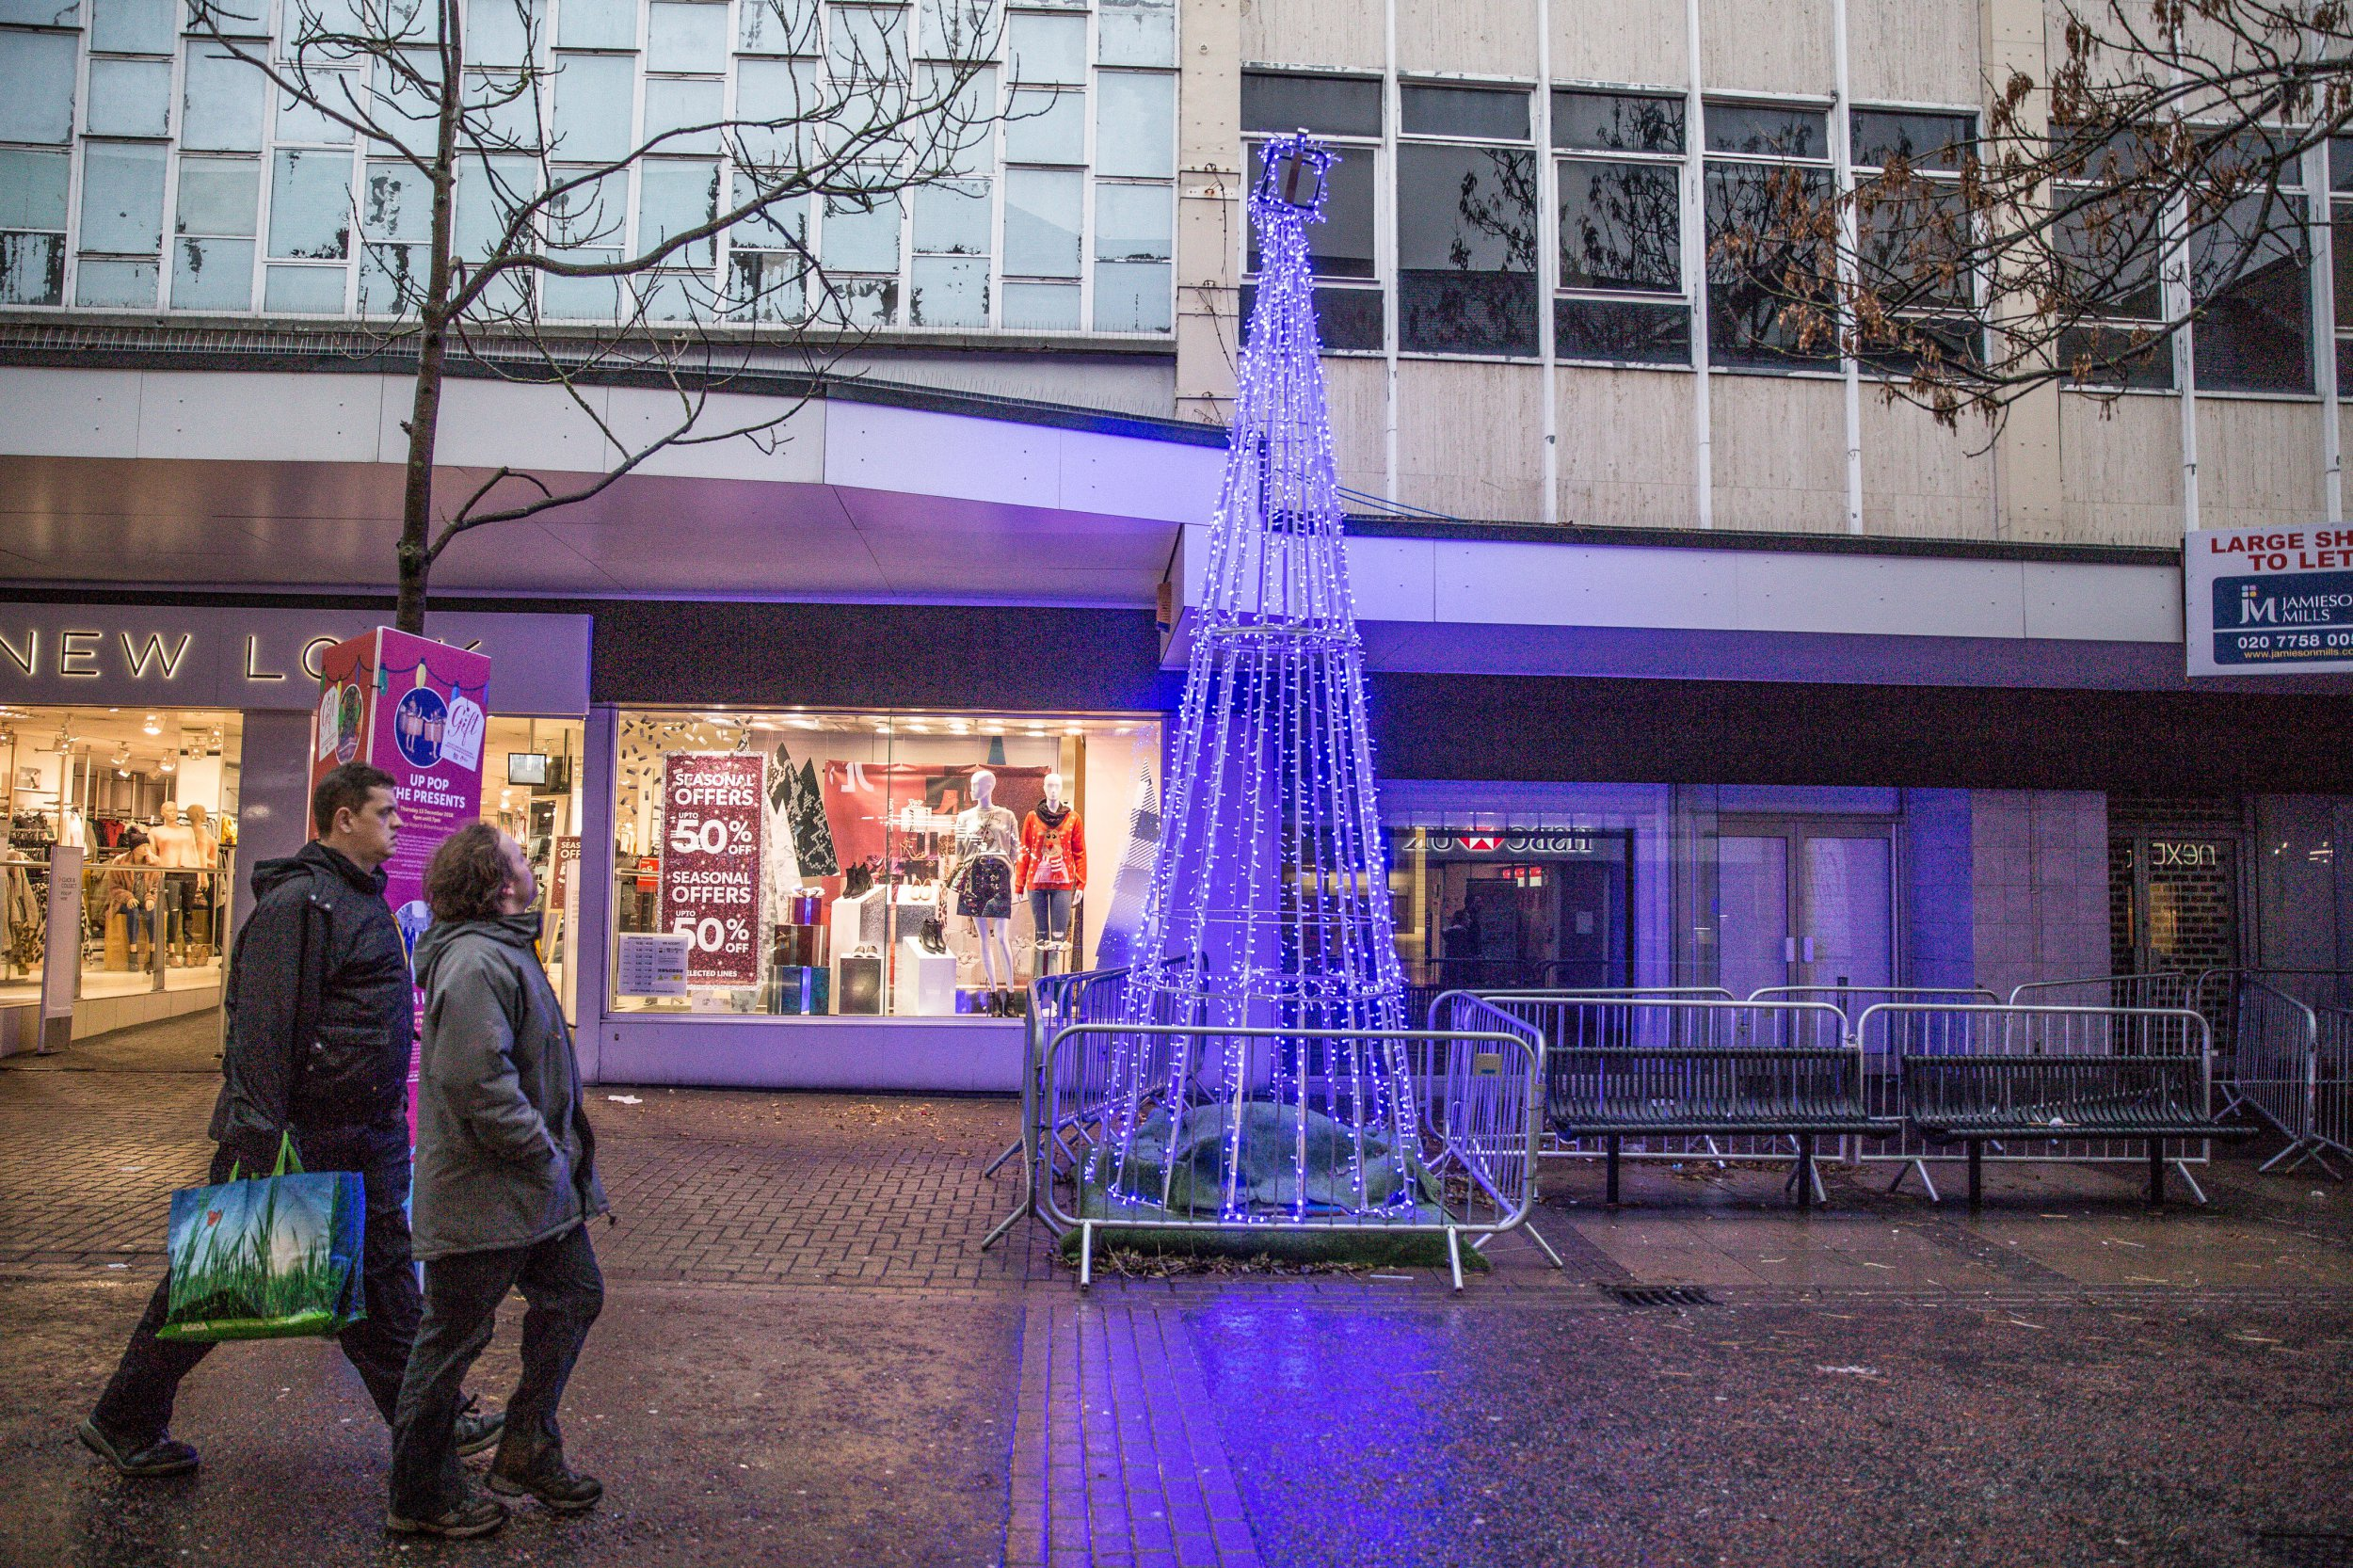 MERCURY PRESS. Birkenhead, UK. 6/12/18. Pictured: Shoppers pass the Christmas tree installed in Birkenhead, Wirral. A towns holiday cheer has turned to festive fury over their waste of space Christmas tree that many say looks like a bit of scaffolding. Residents of Birkenhead on the Wirral, Merseyside, have been left stunned by this years truly appalling Christmas installation. The tree - a hollow cone-shaped metal frame adorned with LED lights and a Christmas present on top - was installed by the Wirral Chamber of Commerce. SEE MERCURY COPY